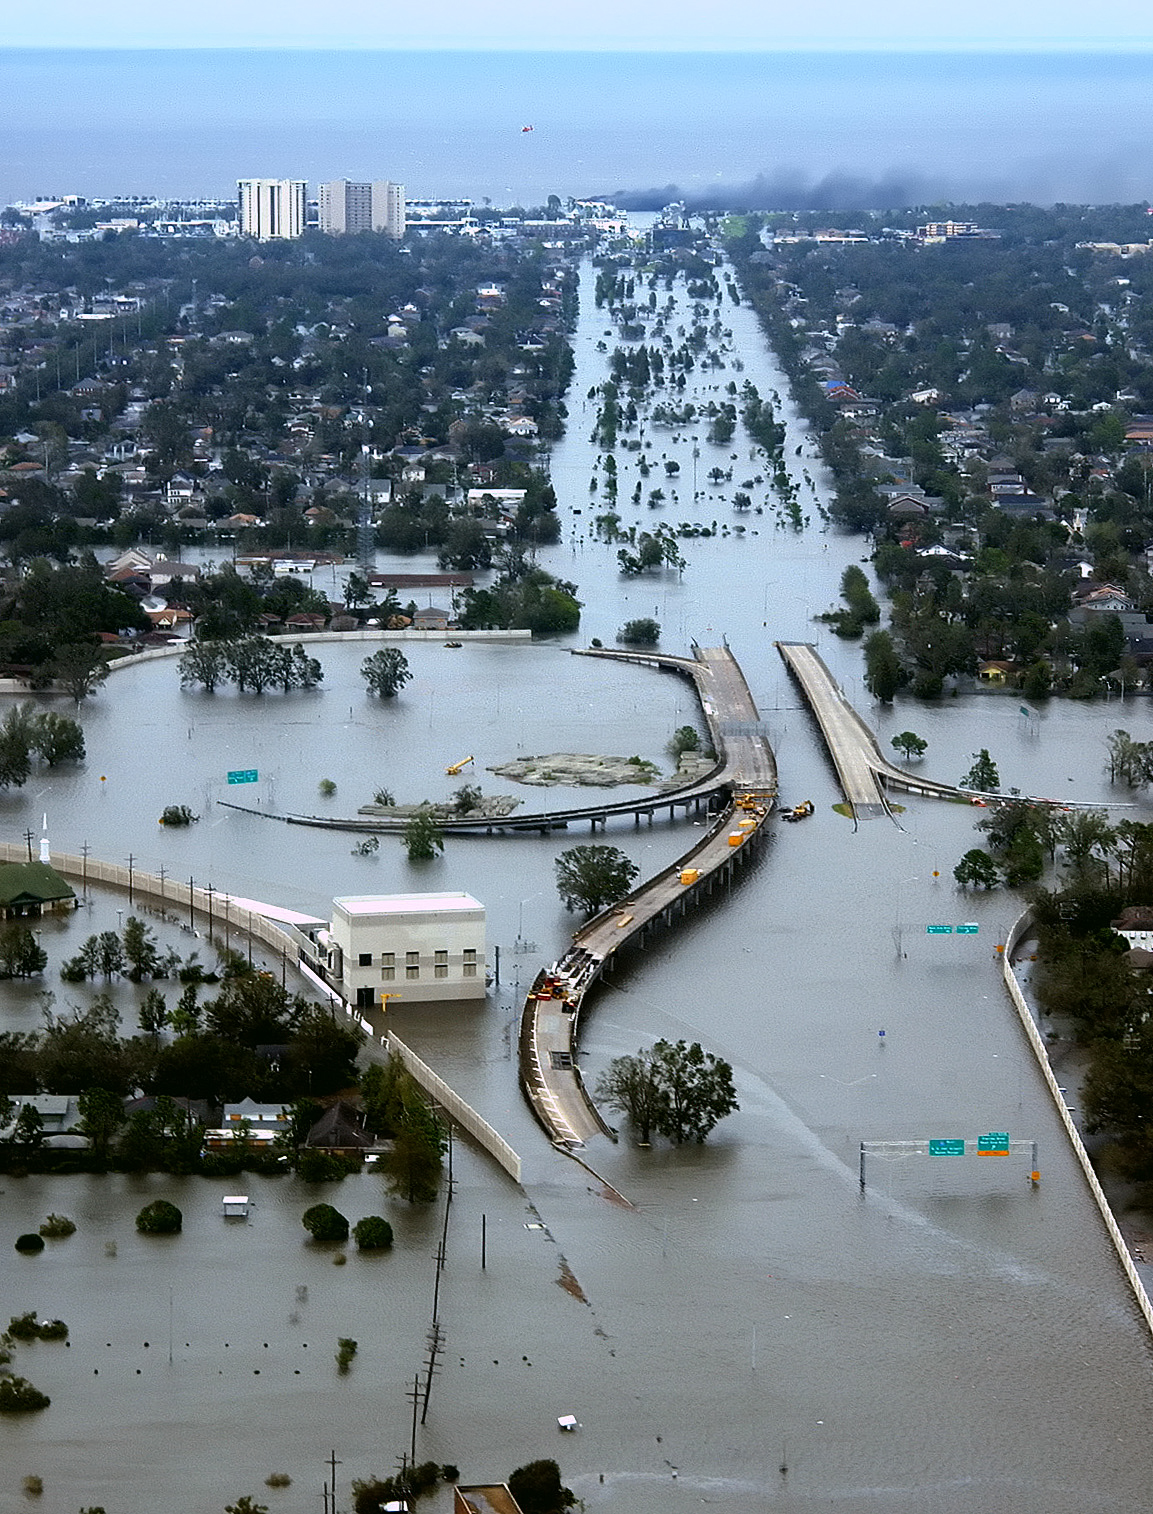 This image shows the city of New Orleans, LA flooded after Hurricane Katrina, particularly it shows high ways and government buildings under water.